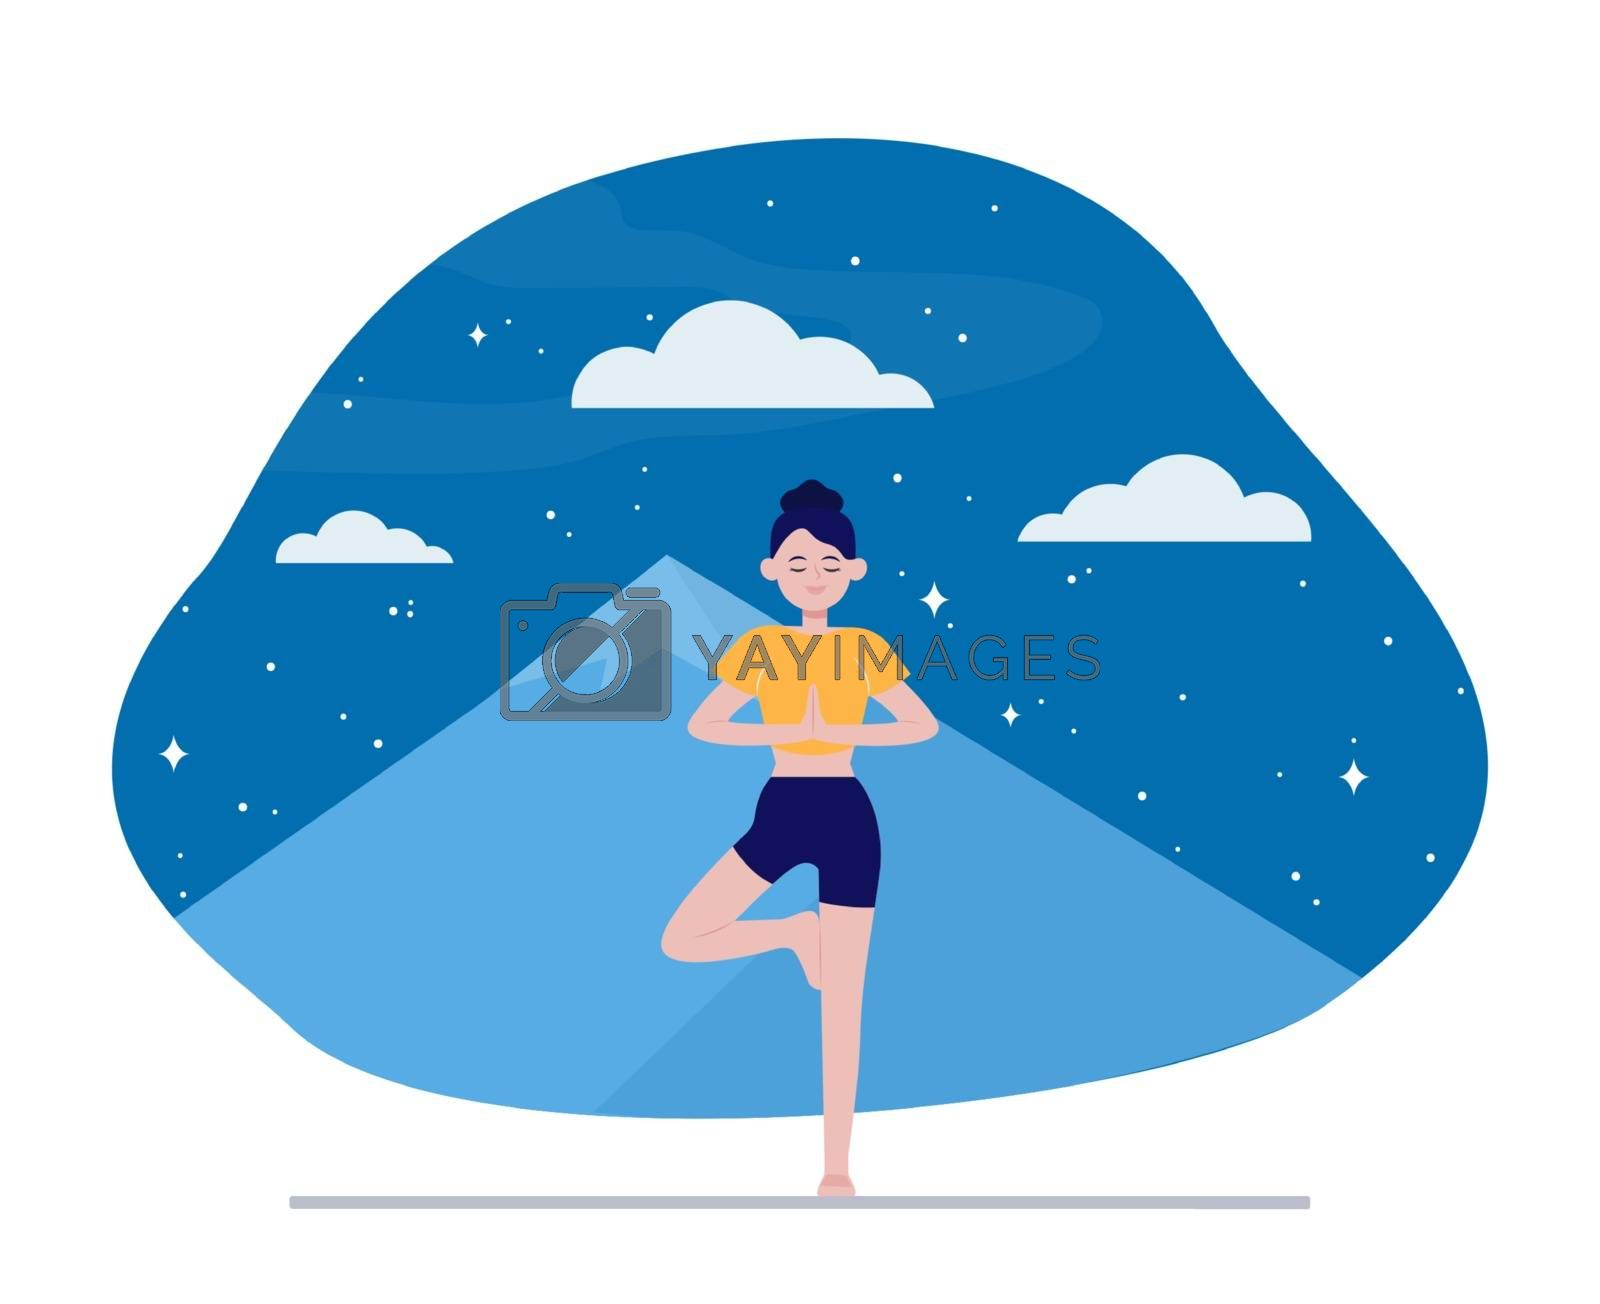 Young woman doing yoga outdoors. Night mountain landscape in background flat vector illustration. Meditation, relaxation, balance concept for banner, website design or landing web page